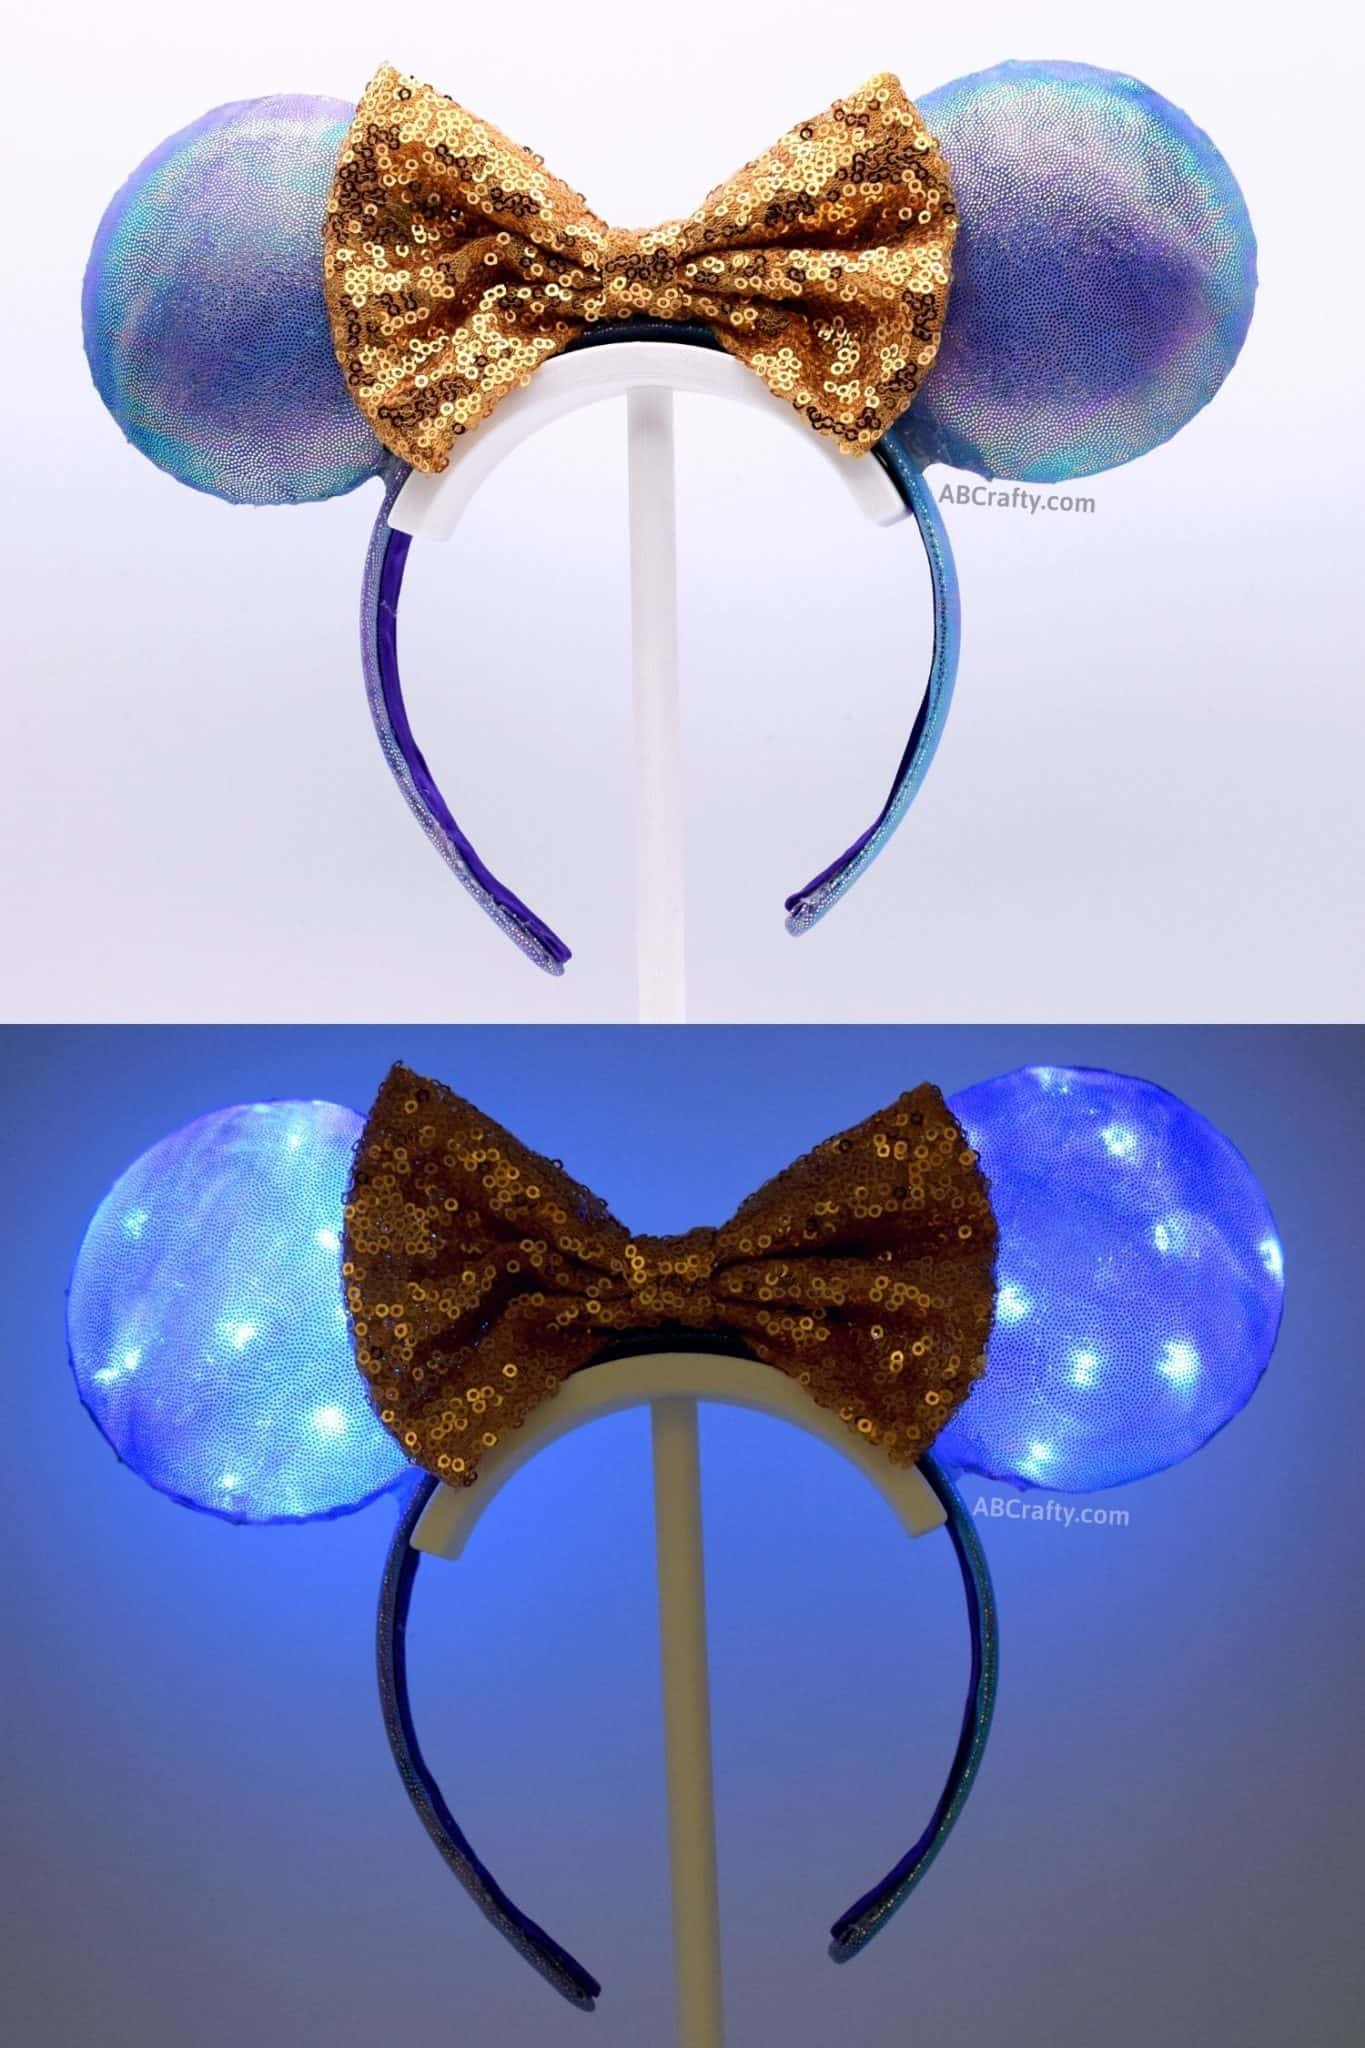 diy purple and blue iridescent mickey mouse ears both in the light and lit up in the disney world 50th anniversary colors